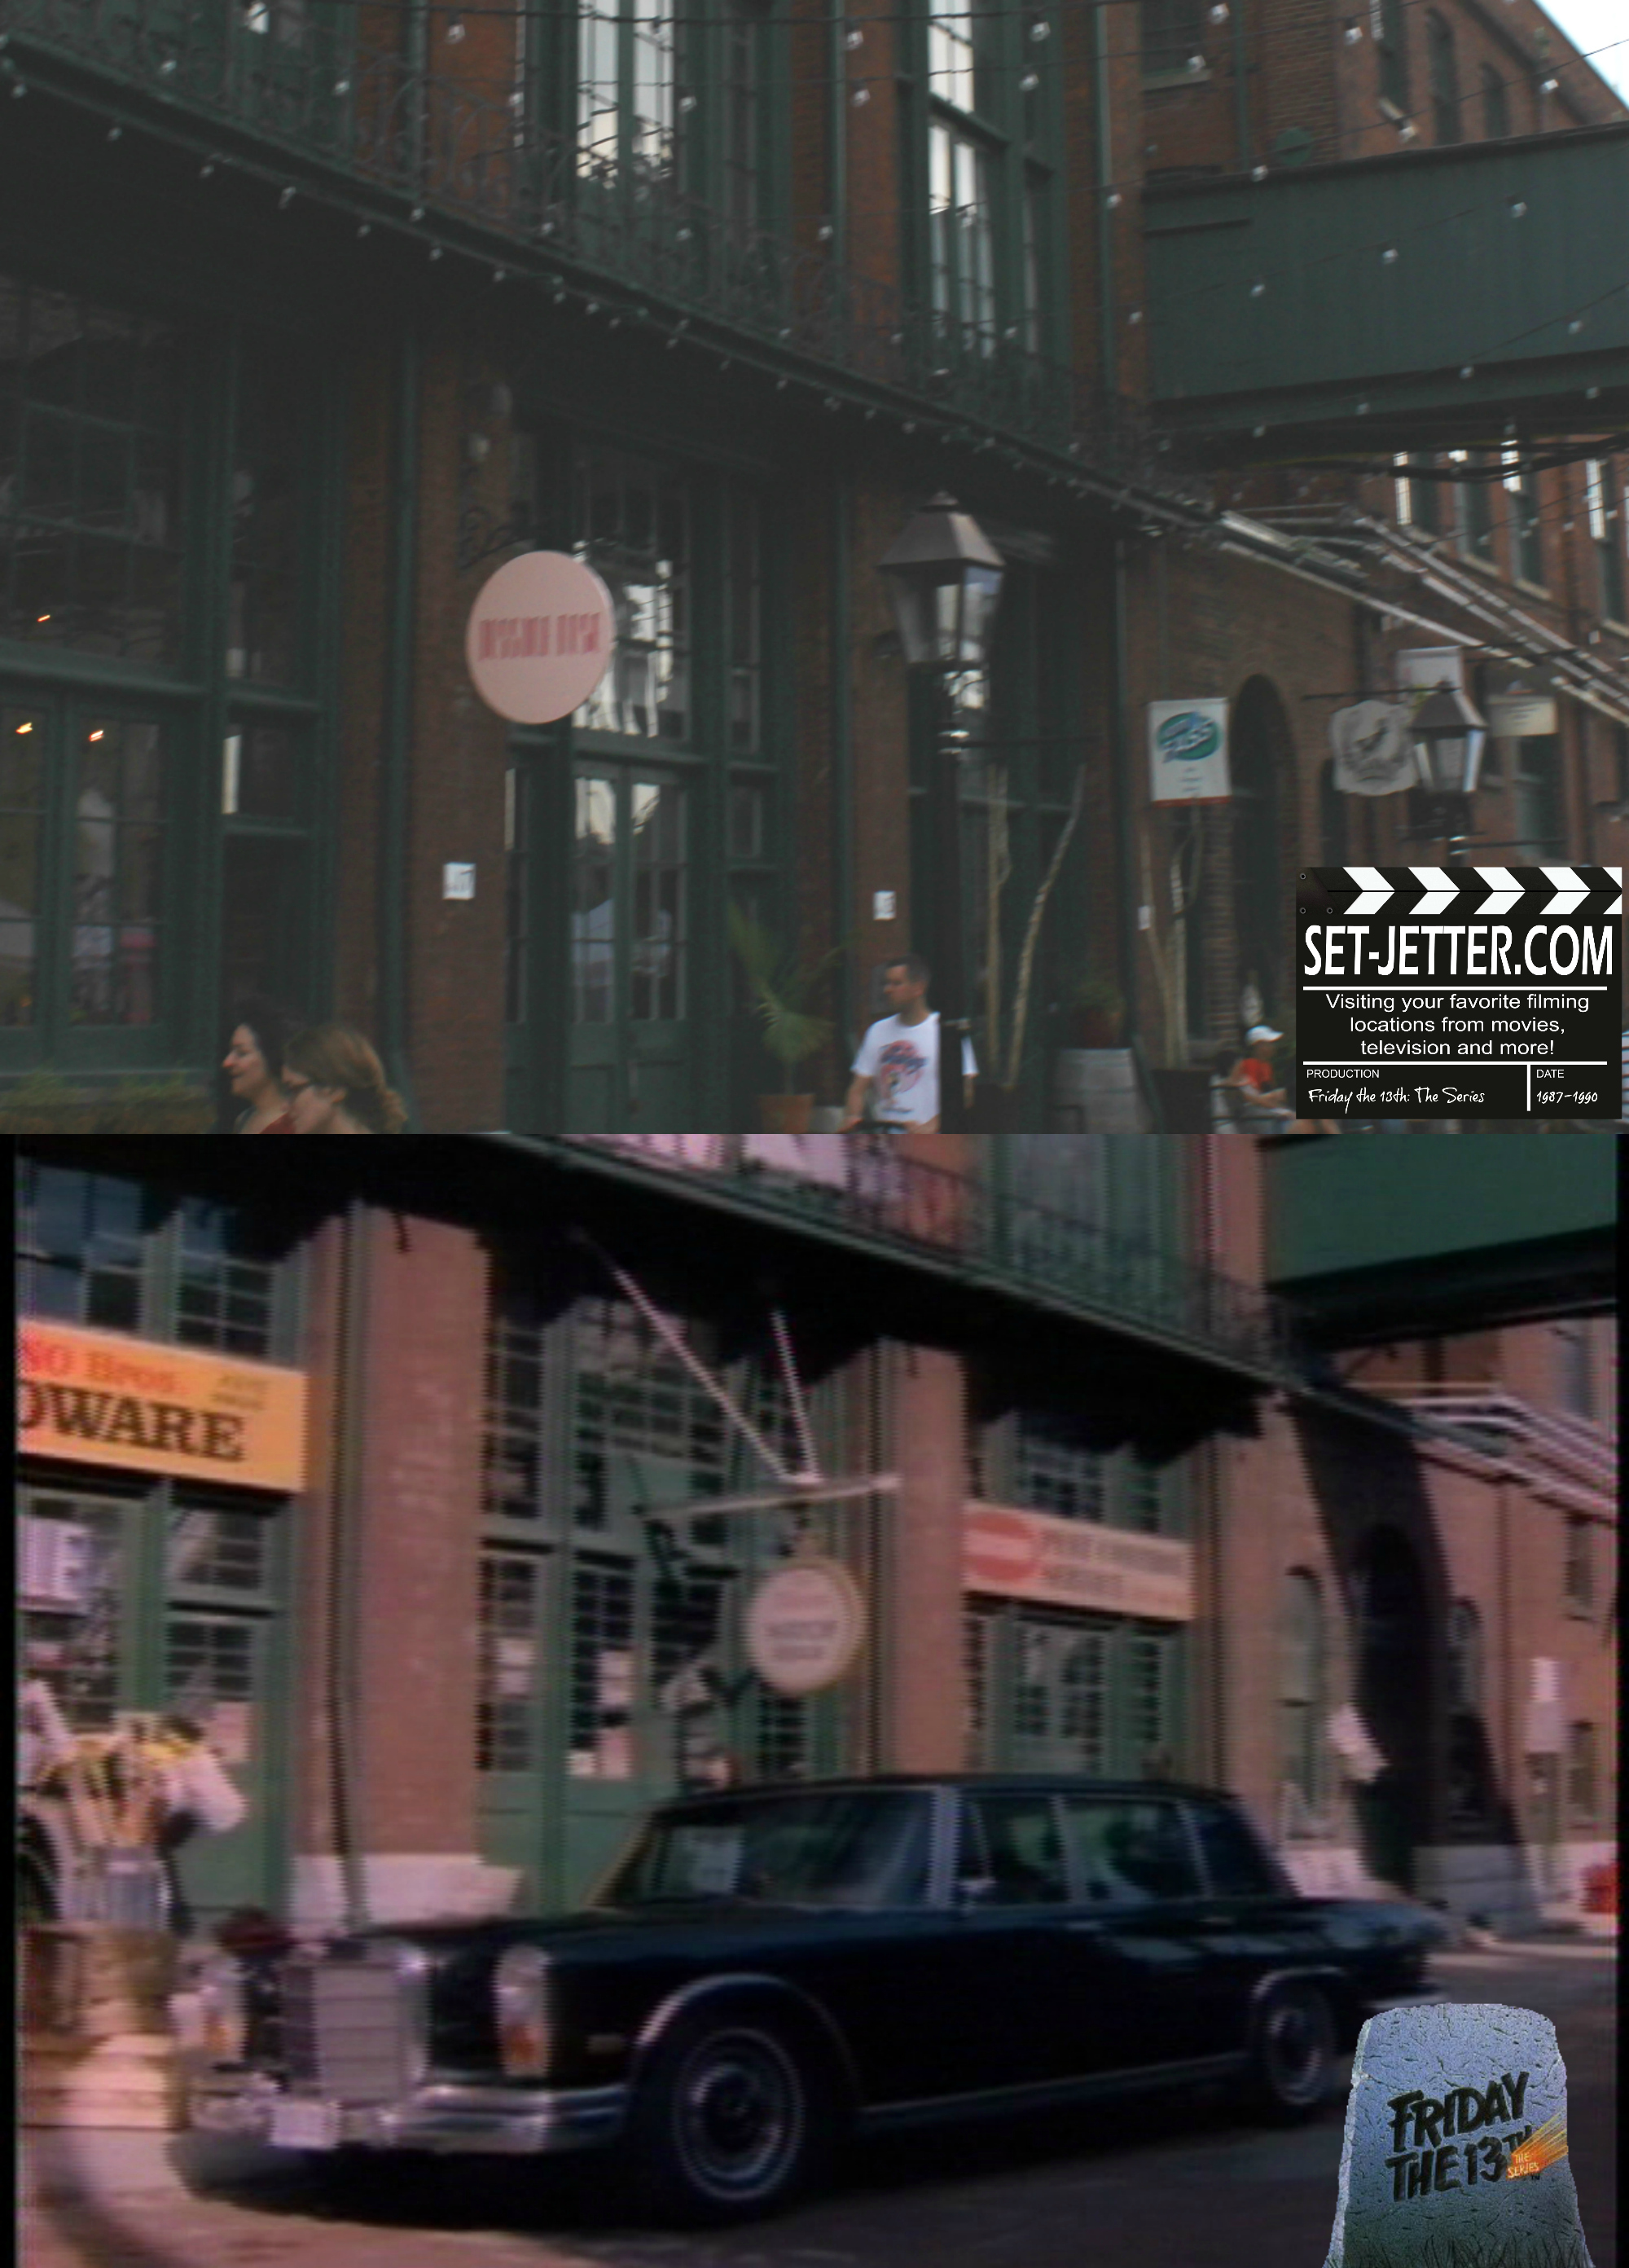 Friday the 13th The Series comparison 10.jpg